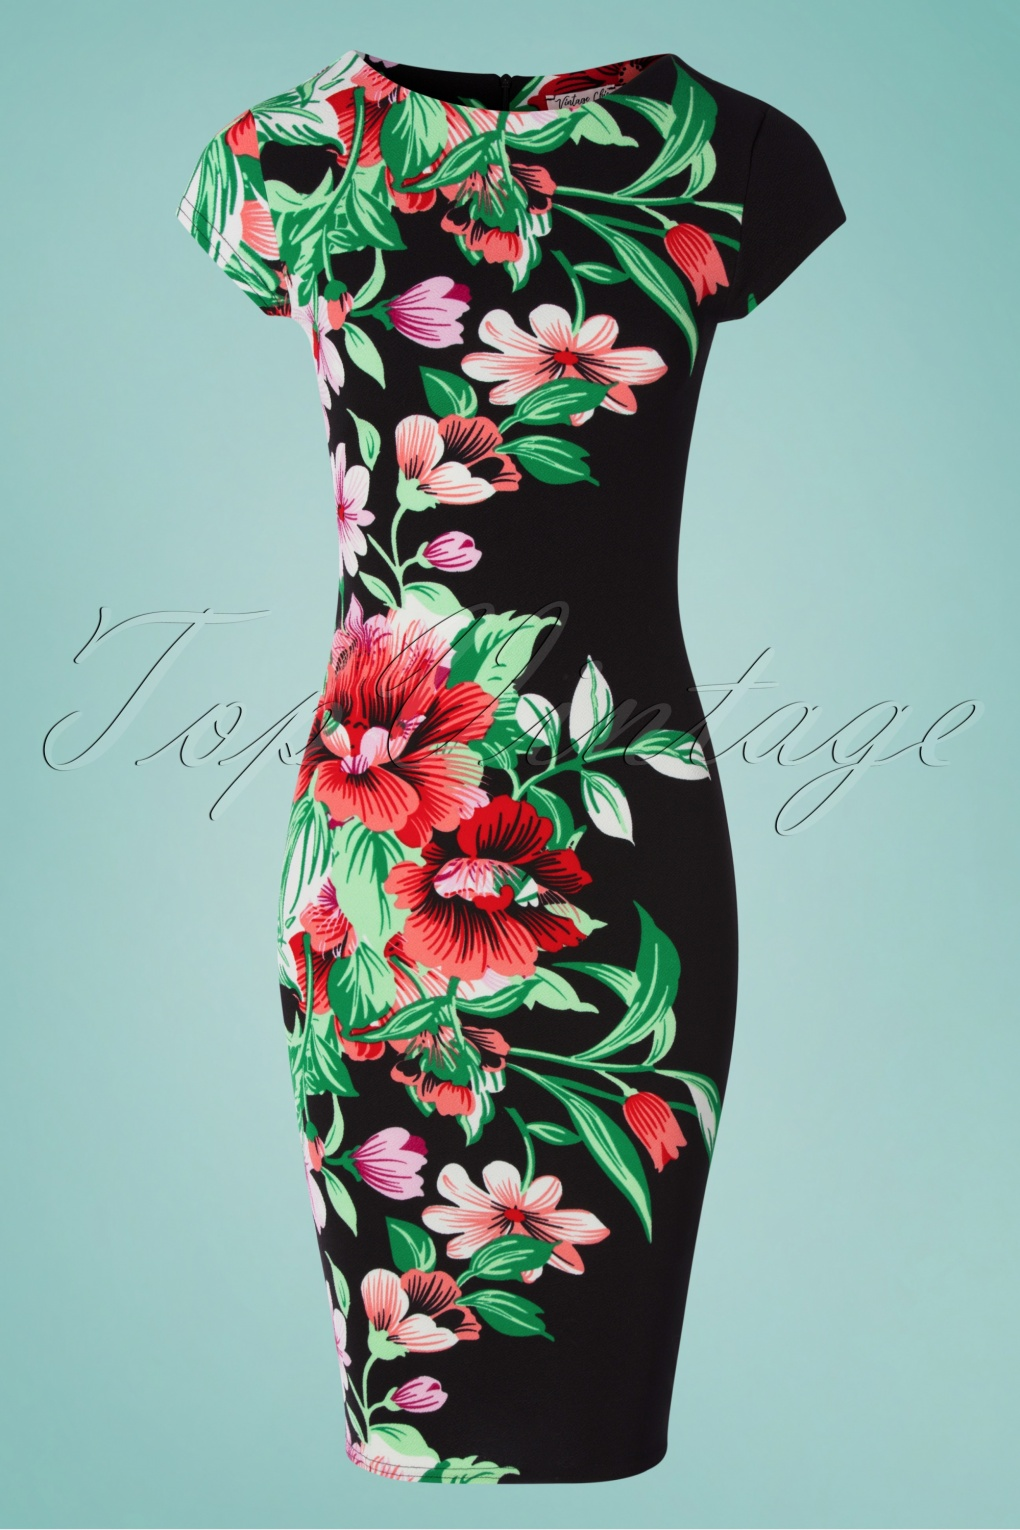 Pin Up Dresses | Pinup Clothing & Fashion 60s Aloha Tropical Floral Pencil Dress in Black �35.28 AT vintagedancer.com